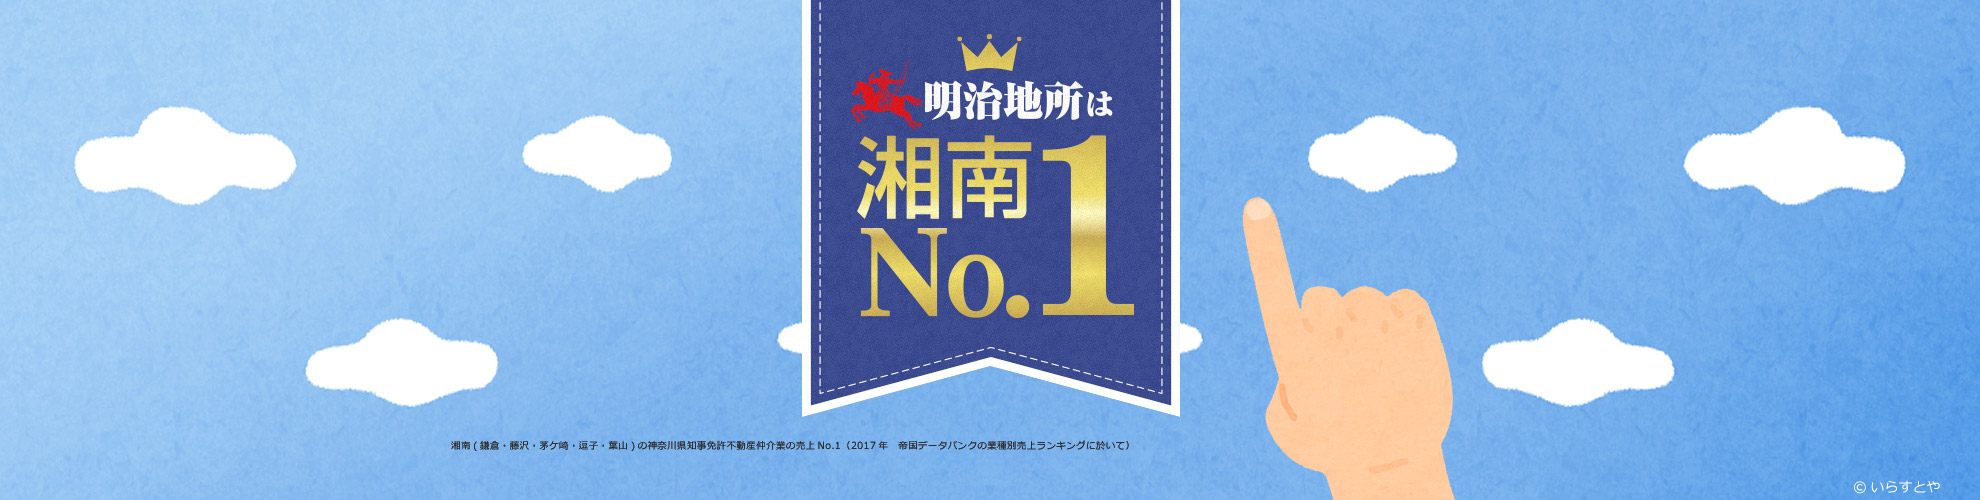 As for the meiji-jisho, Shonan is number one